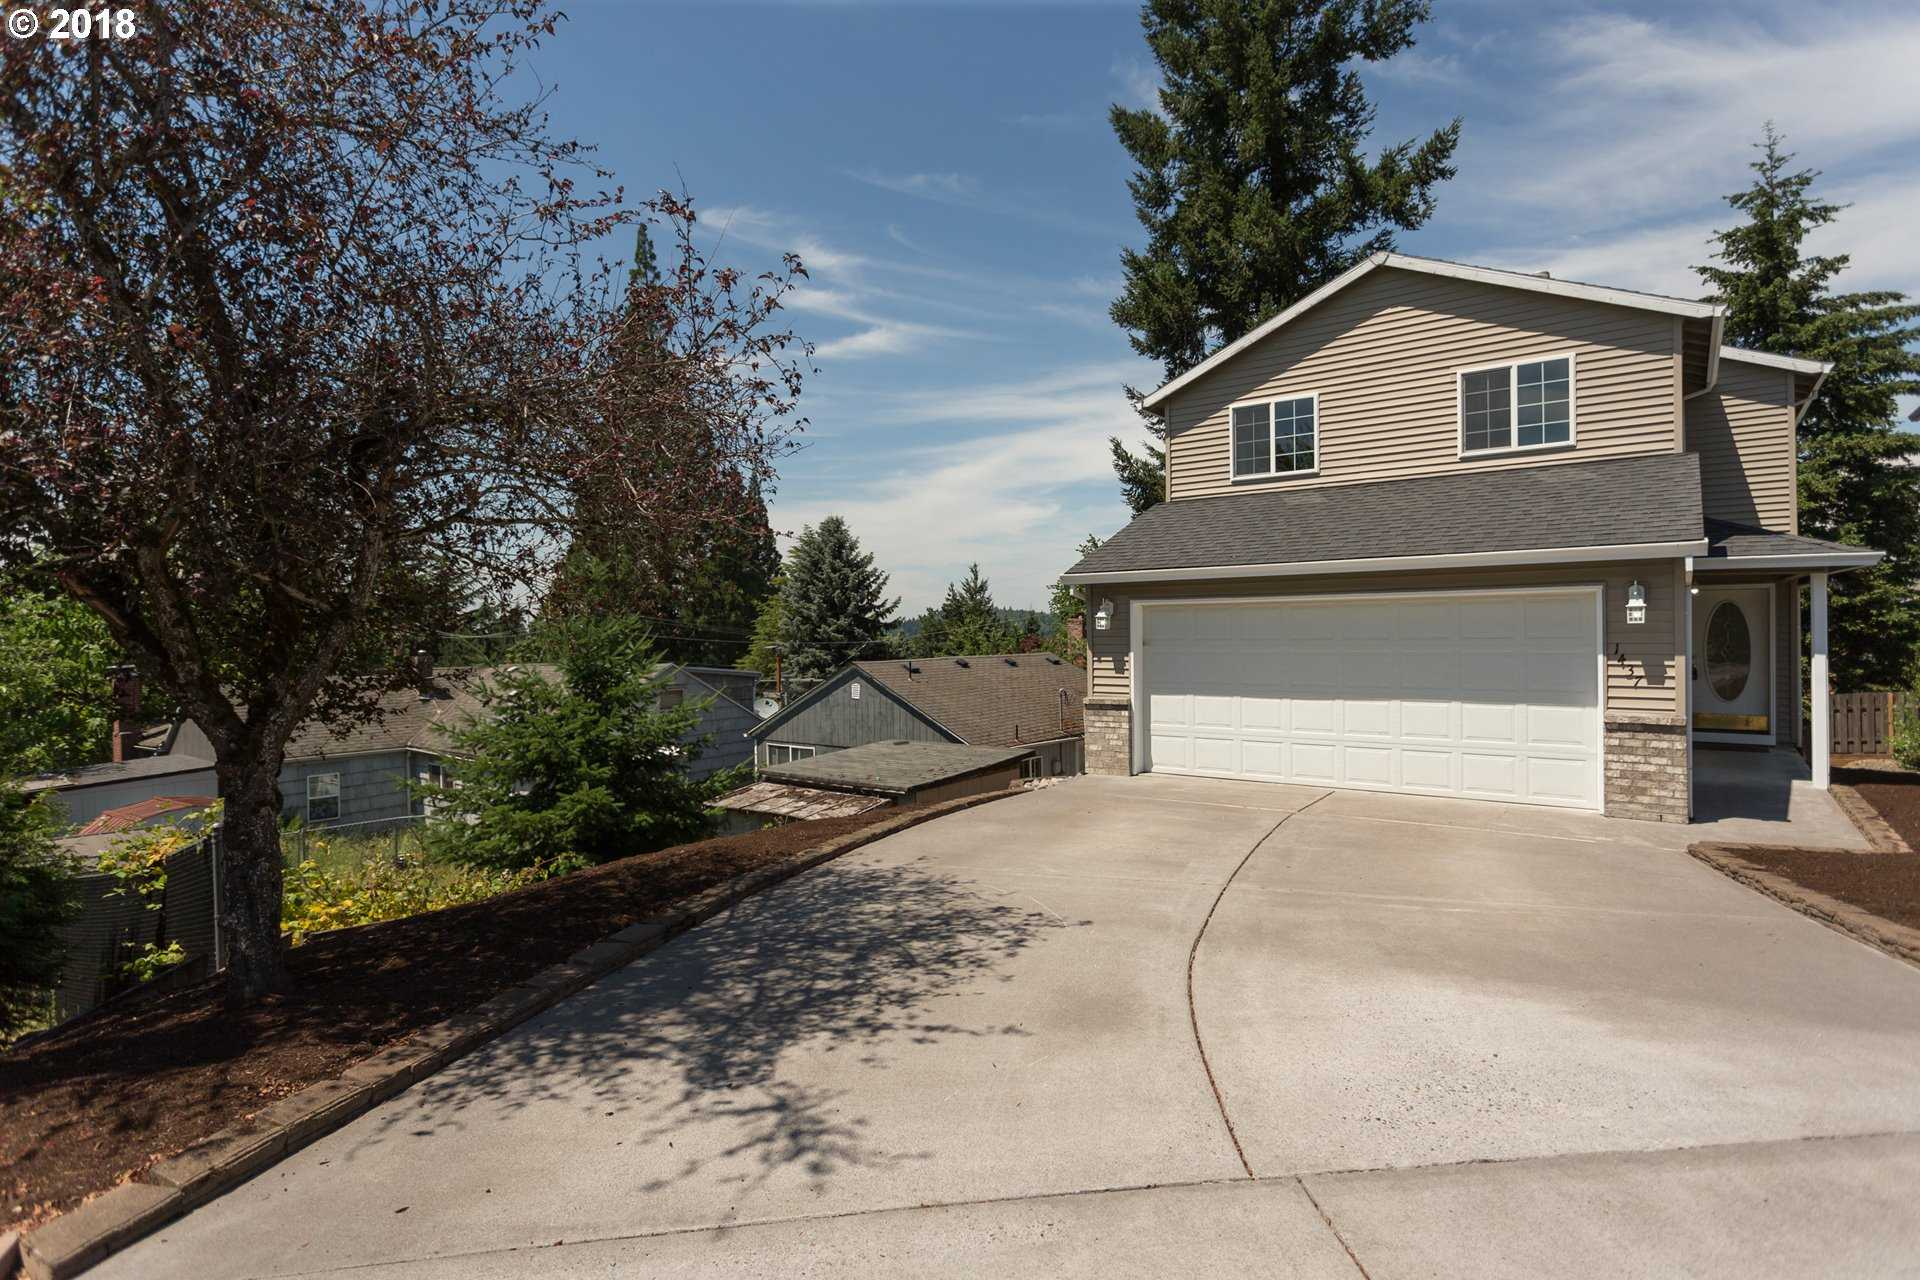 $309,900 - 3Br/3Ba -  for Sale in Binford Ridge, Gresham